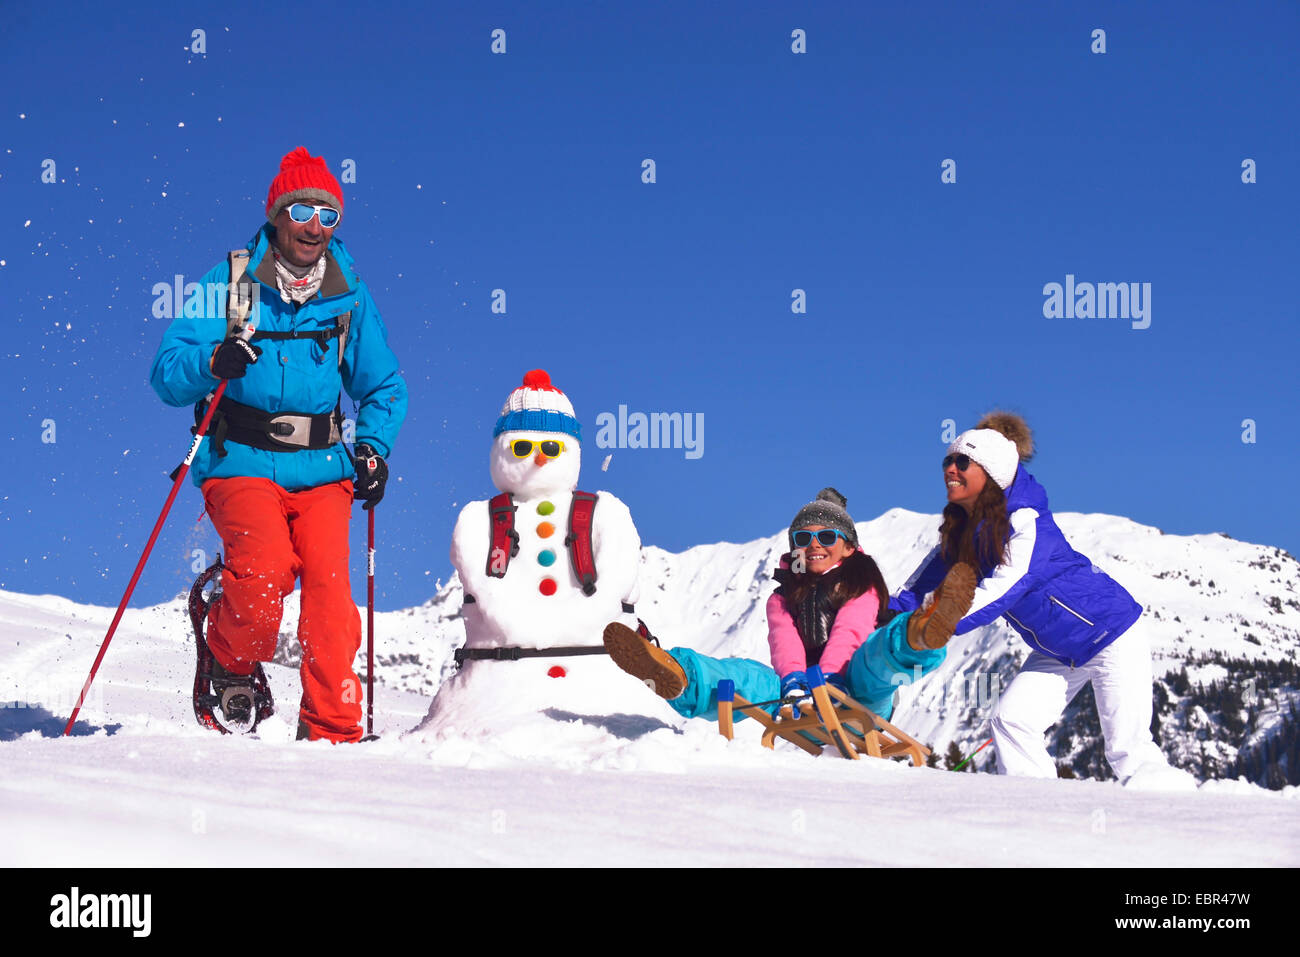 Family in snow holidays, France - Stock Image